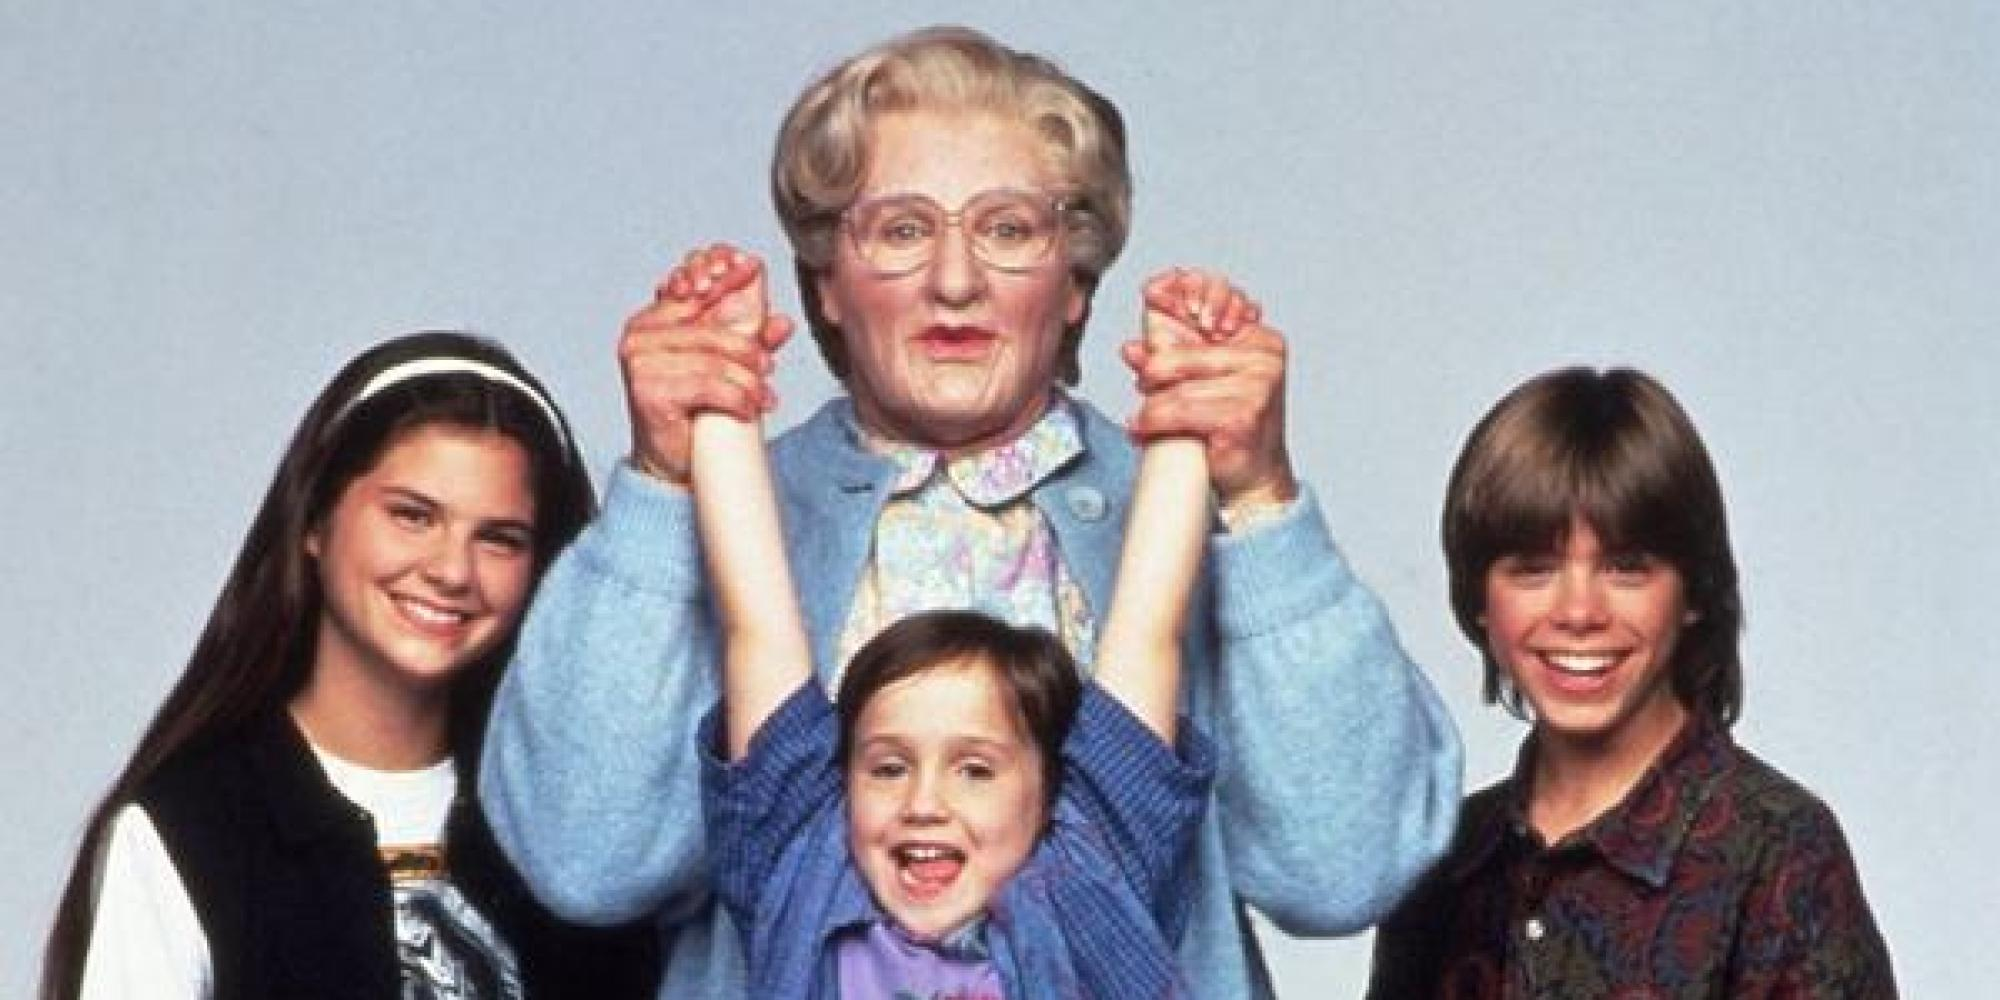 o-mrs-doubtfire-cast-facebook